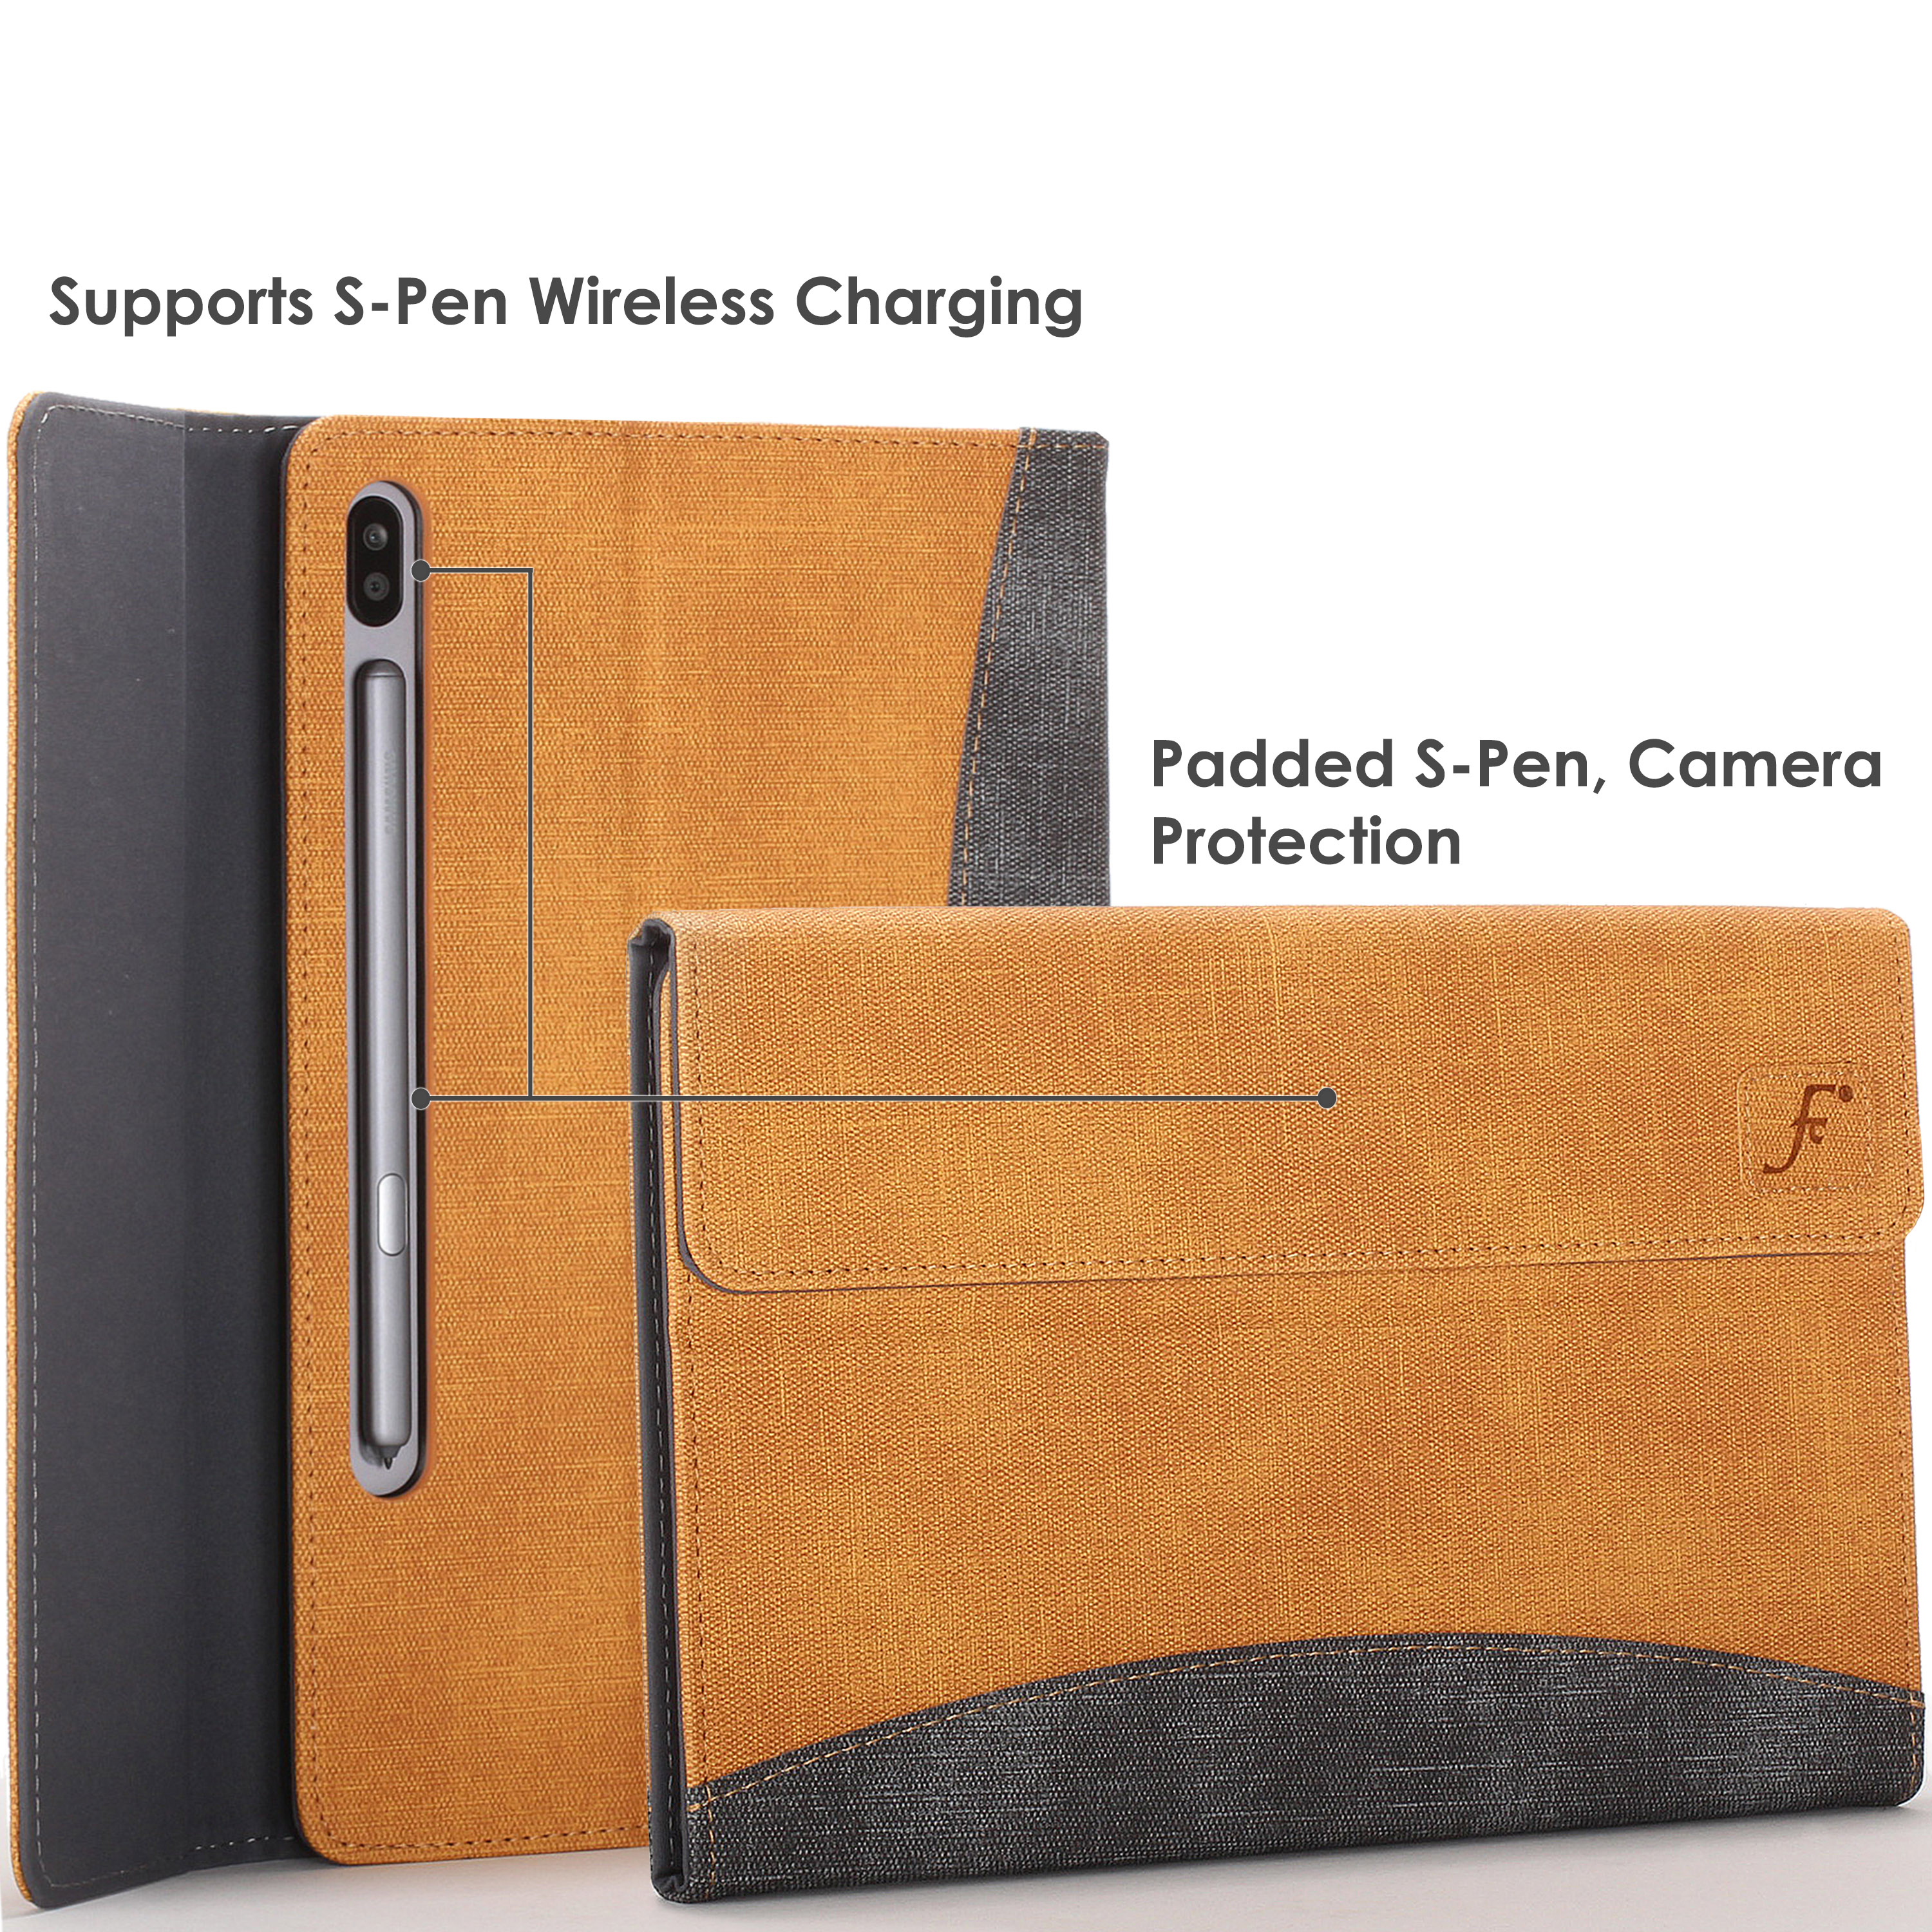 Samsung-Galaxy-Tab-S6-10-5-Case-Cover-Stand-with-Document-Pocket-amp-Sleep-Wake thumbnail 40